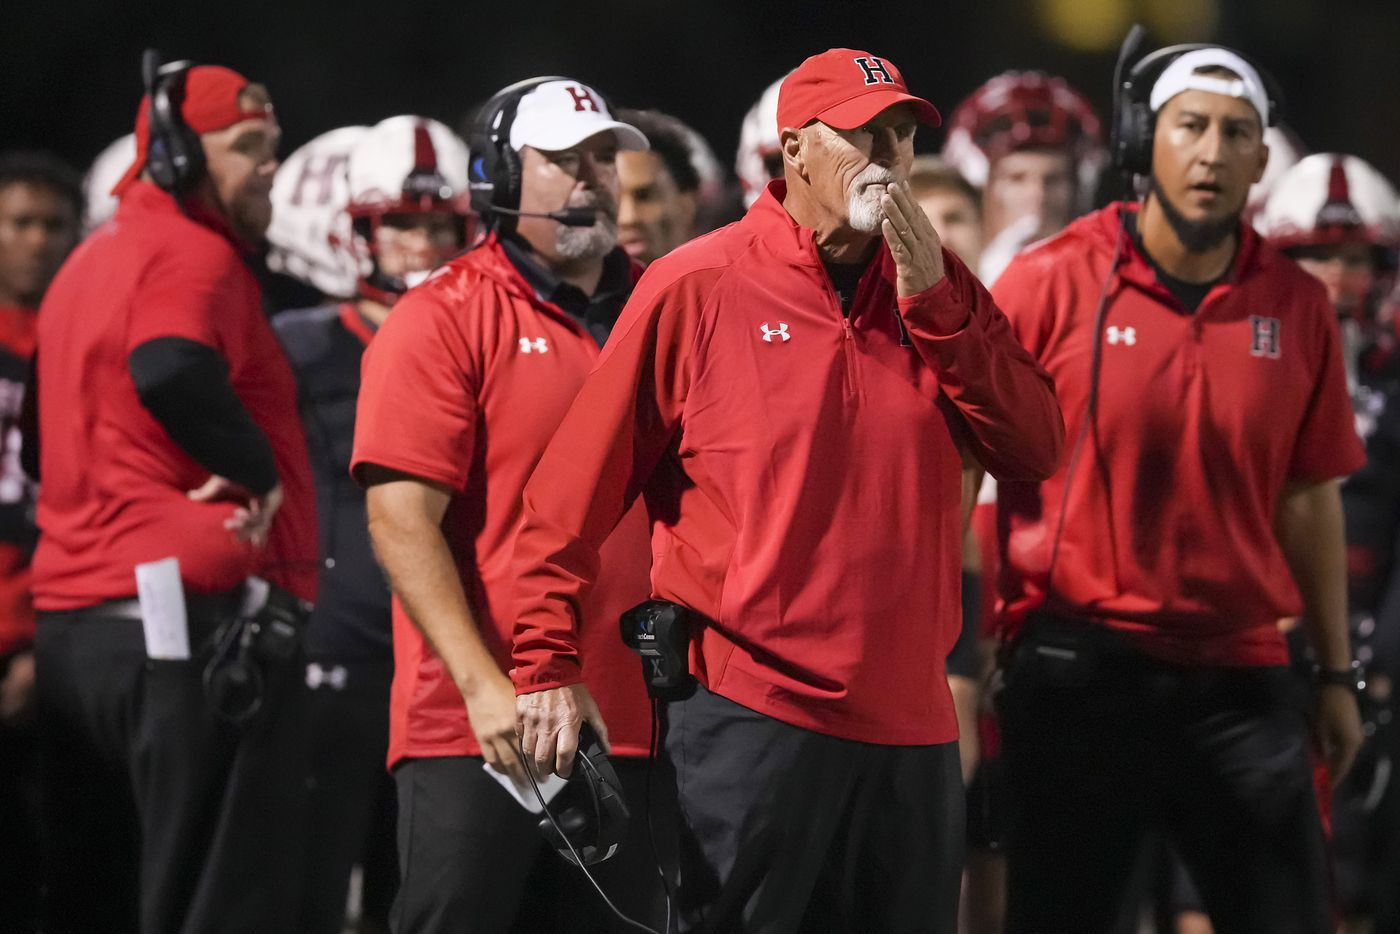 Rockwall-Heath head coach Mike Spradlin works on the sidelines during the second half of a District 10-6A high school football game against Rockwall at Wilkerson-Sanders Stadium on Friday, Sept. 24, 2021, in Rockwall.  Rockwall-Heath won the game 79-71 in double overtime.